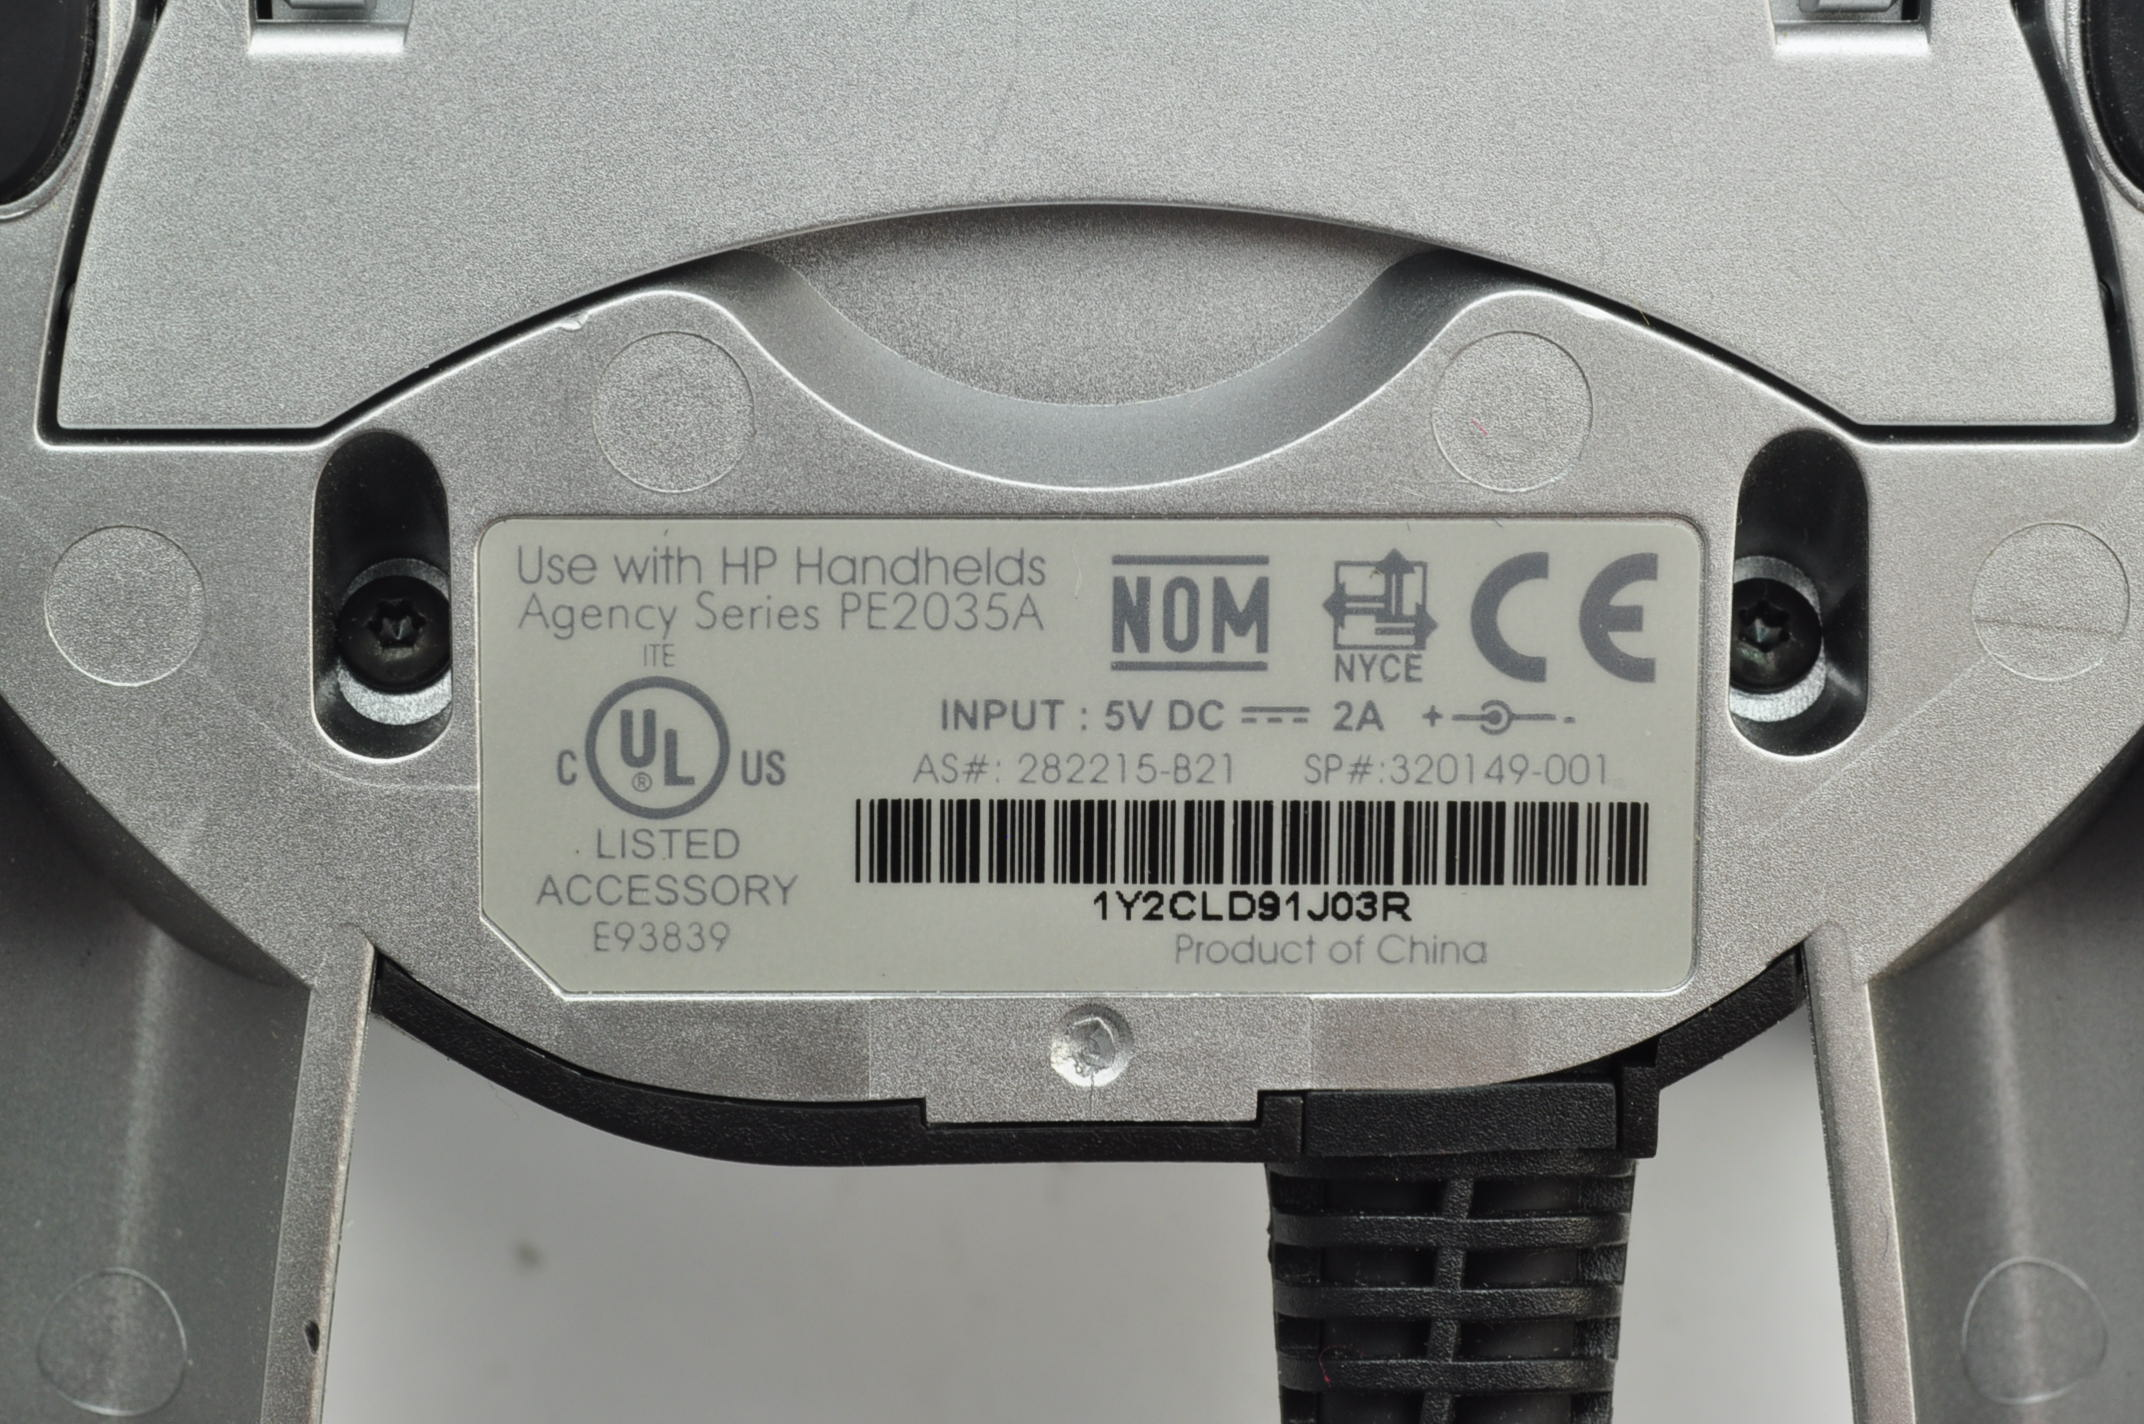 hp invalid electronic serial number